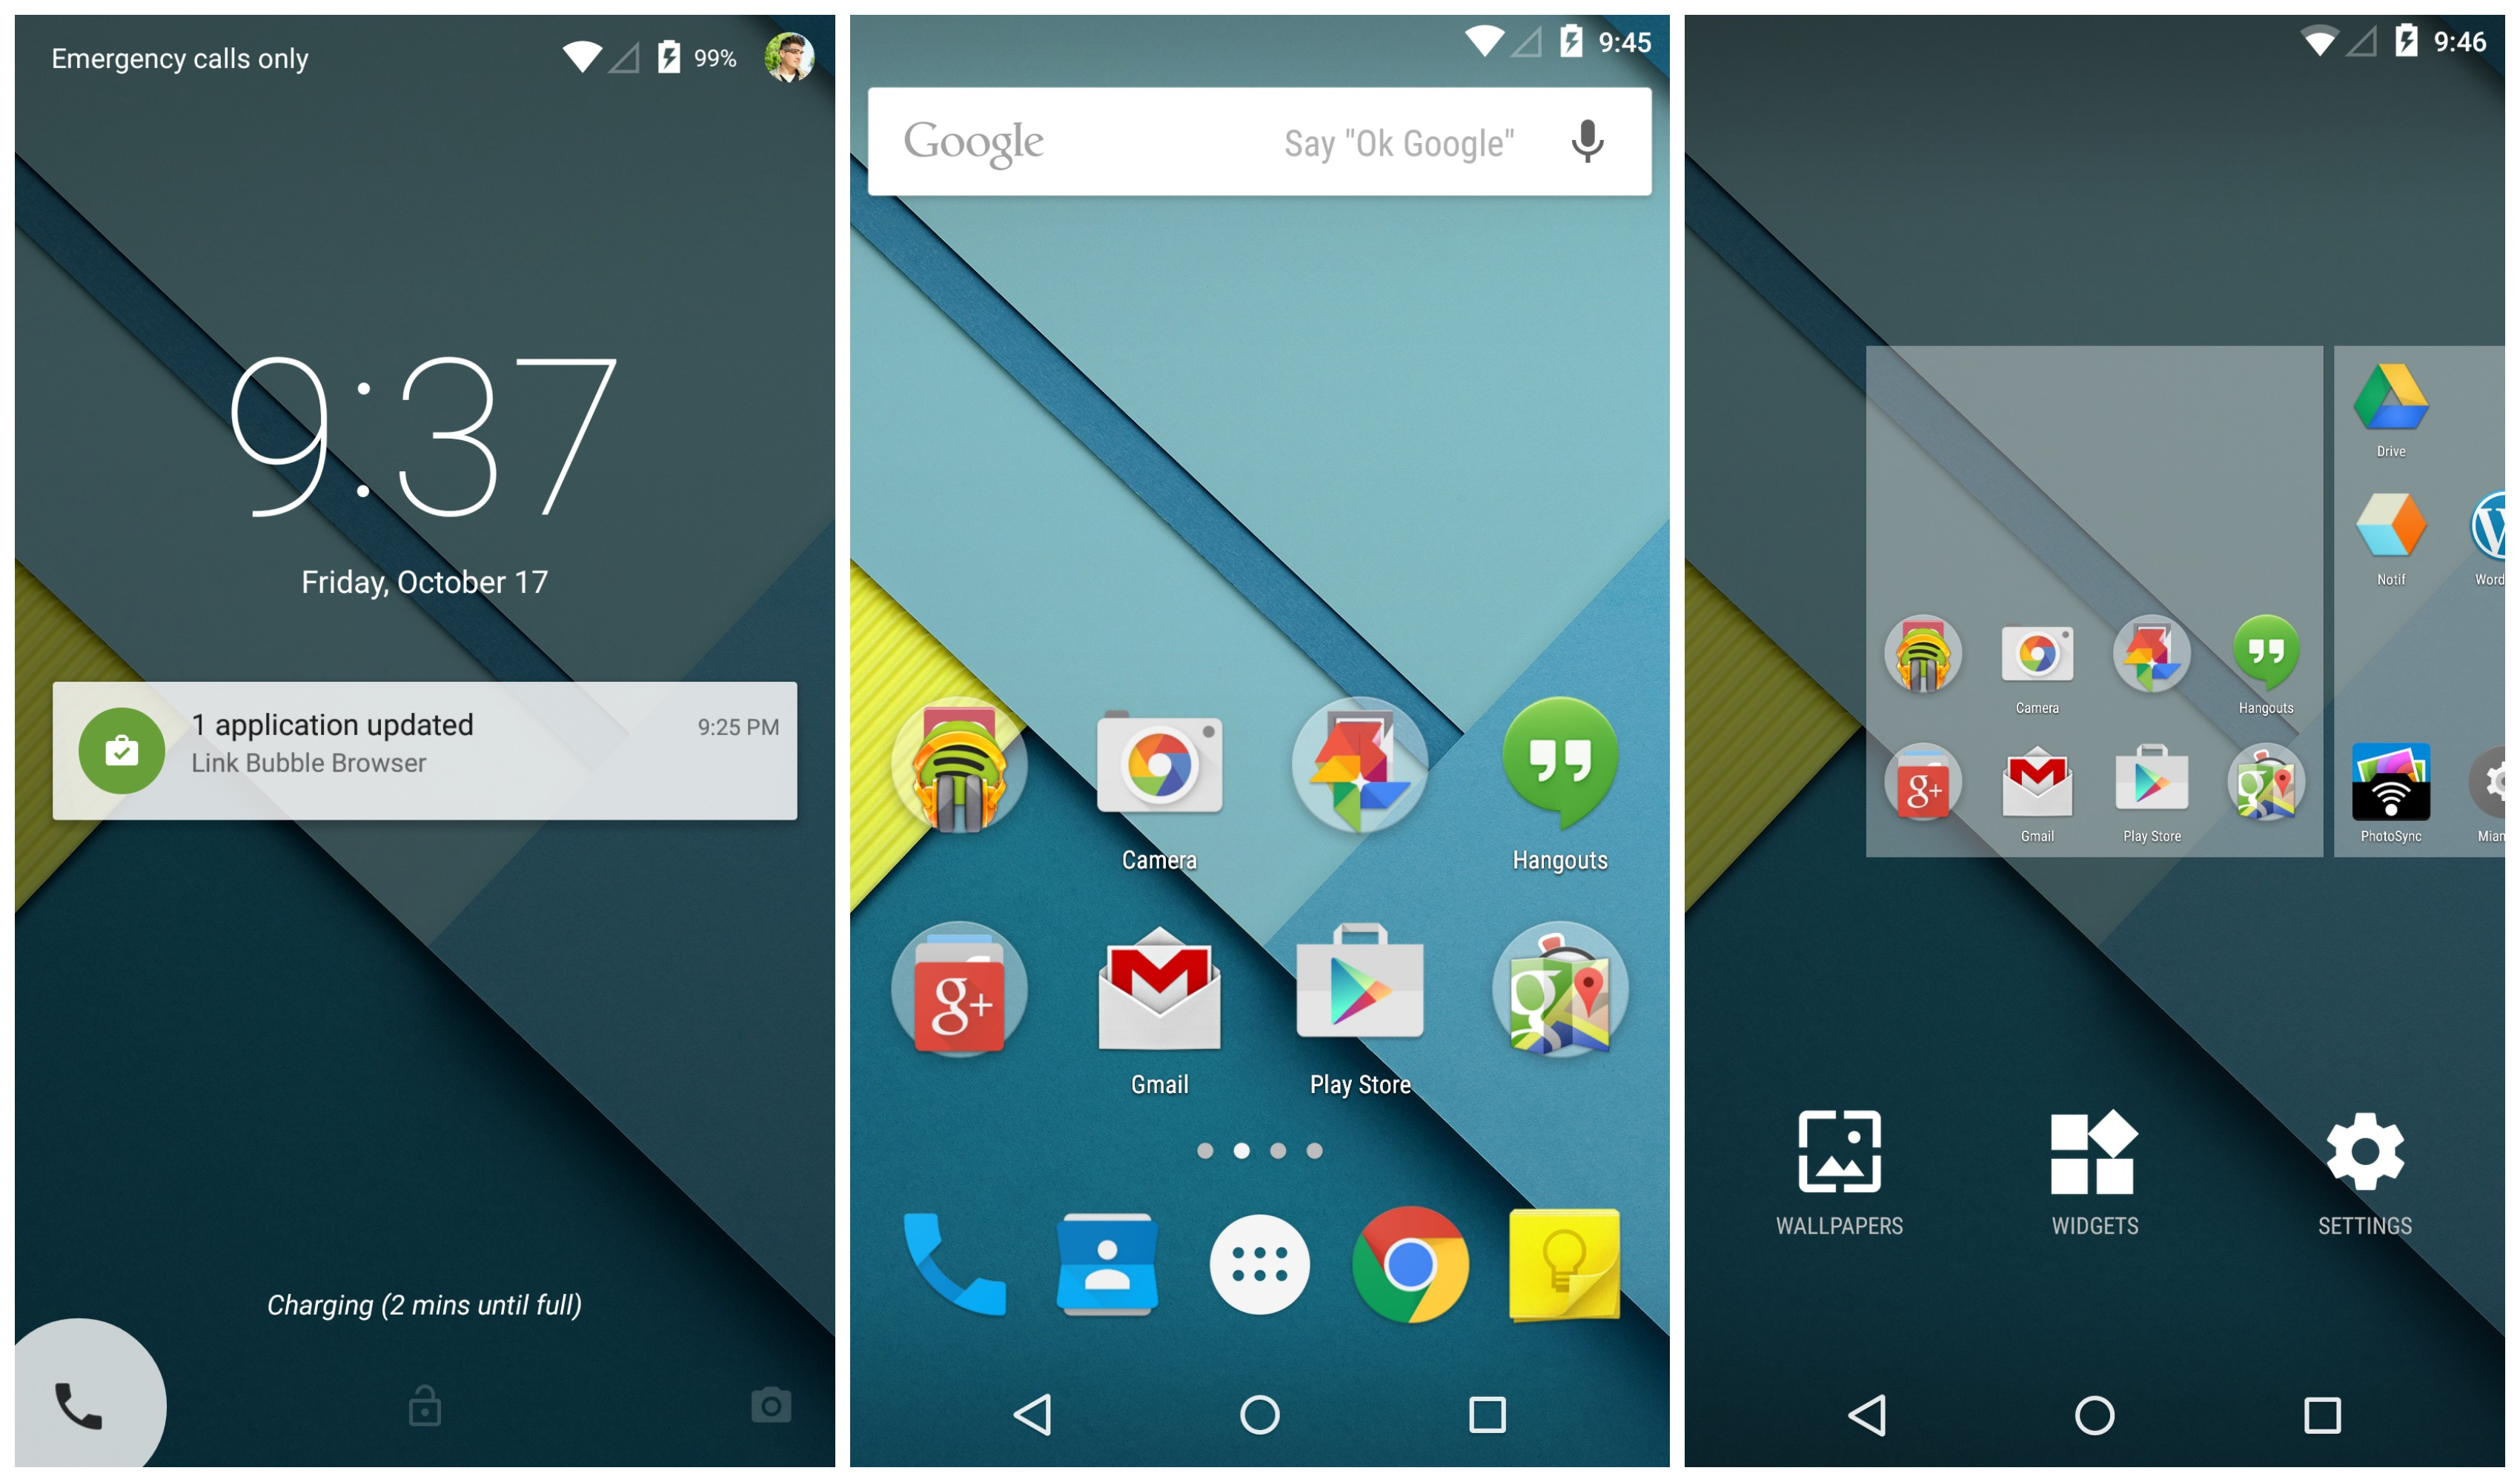 http://phandroid.s3.amazonaws.com/wp-content/uploads/2014/10/Android-5.0-Lollipop-lockscreen-homescreen.jpg